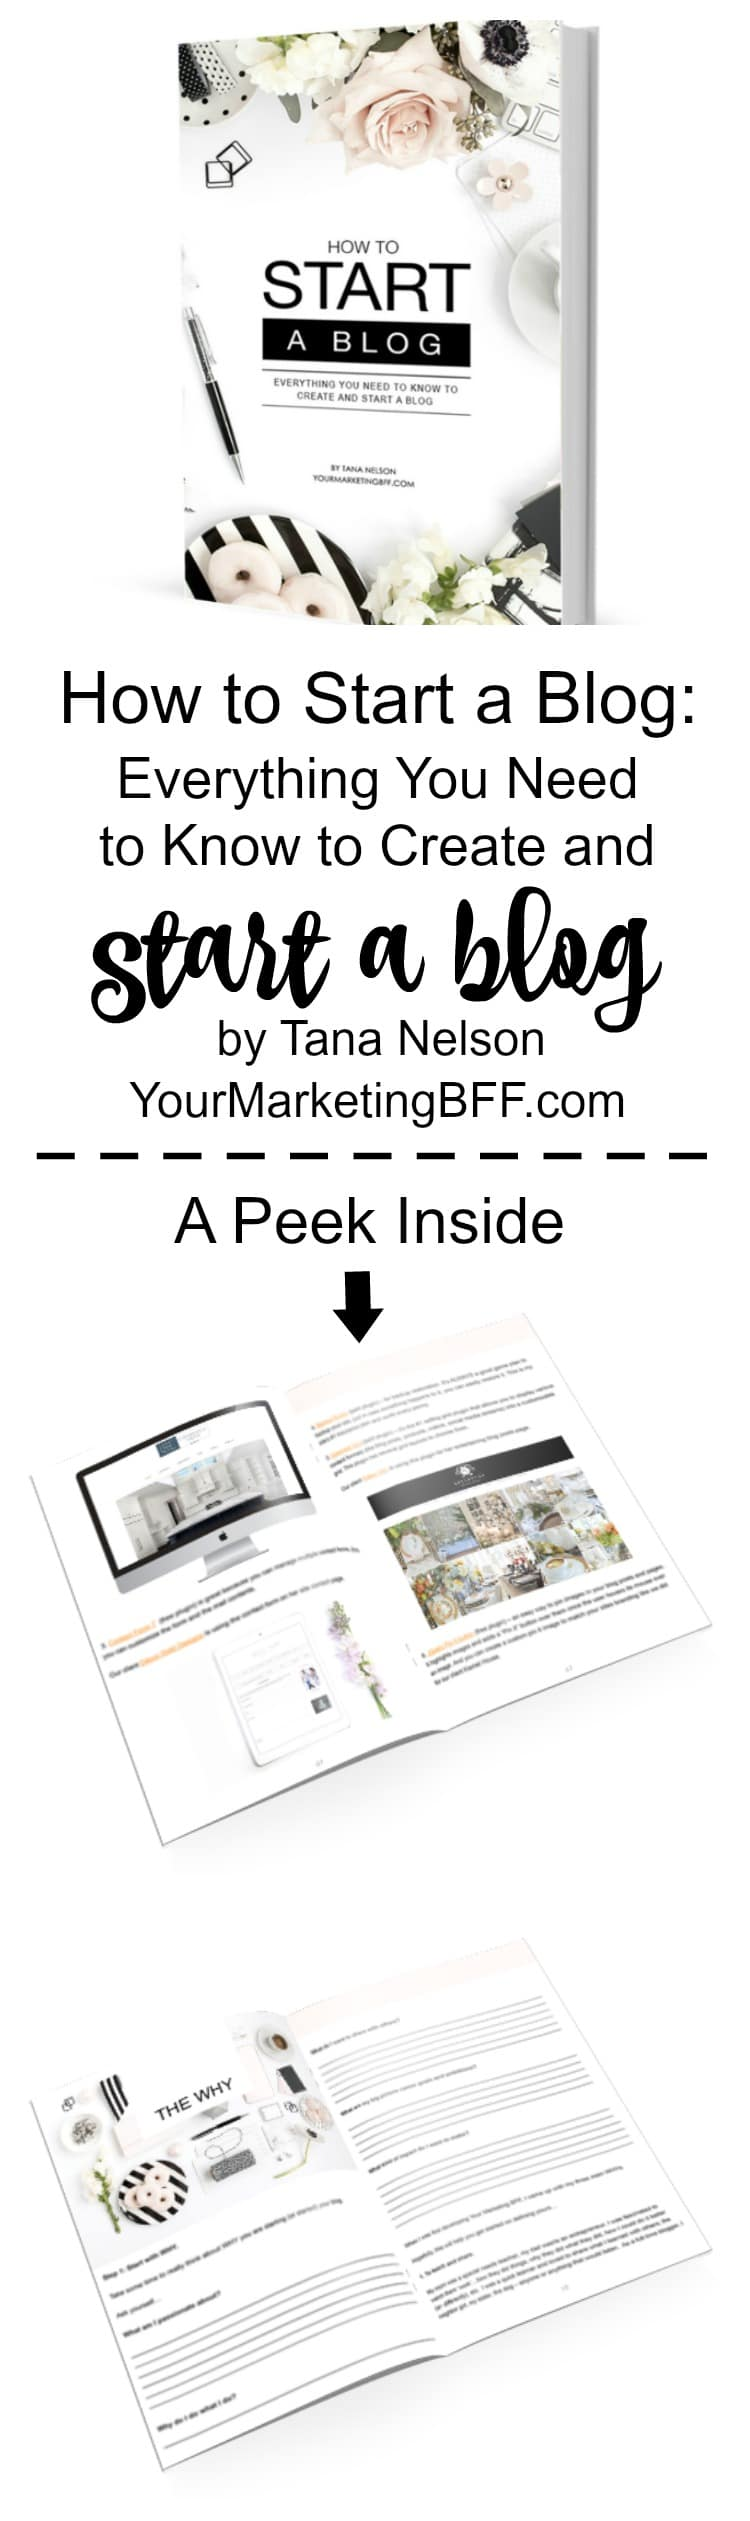 Starting a blog? Here's everything you need to know to start a blog in one easy-to-follow handbook. With step-by-step instructions, this book is the ONE to have! Written by marketing expert and blogger, Tana Nelson, this book saves you hours of time by providing all the information you need in one place. Whether you are starting a blog for personal growth or starting a blog to make money, this eBook is for you! | www.tootsweet4two.com